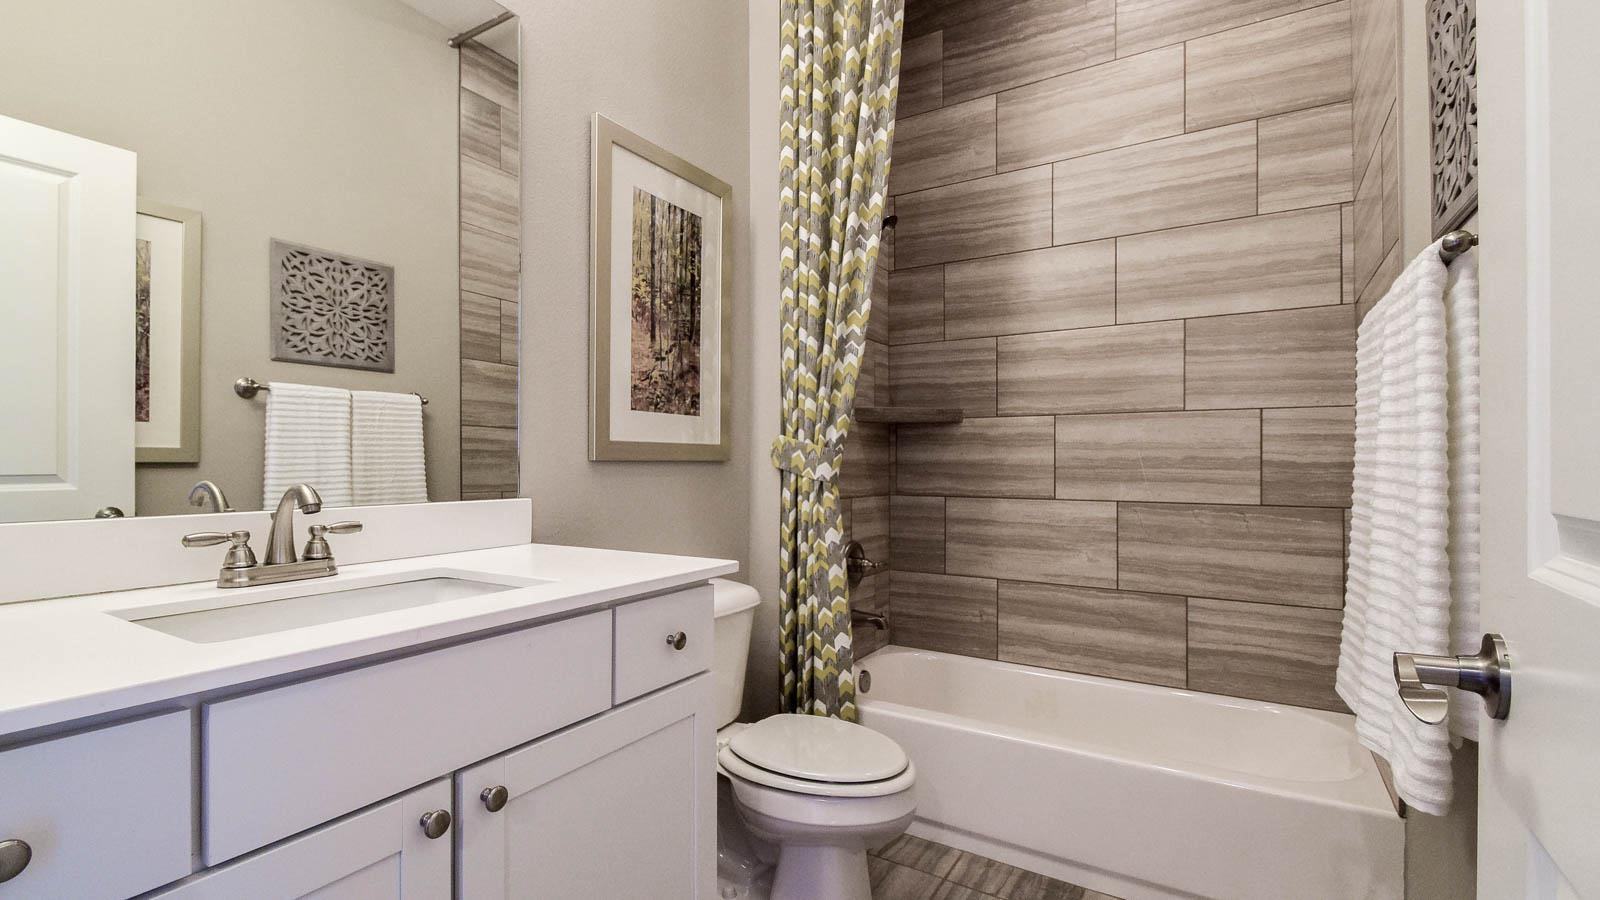 Bathroom featured in the Dogwood By Buffington Homes in Fayetteville, AR